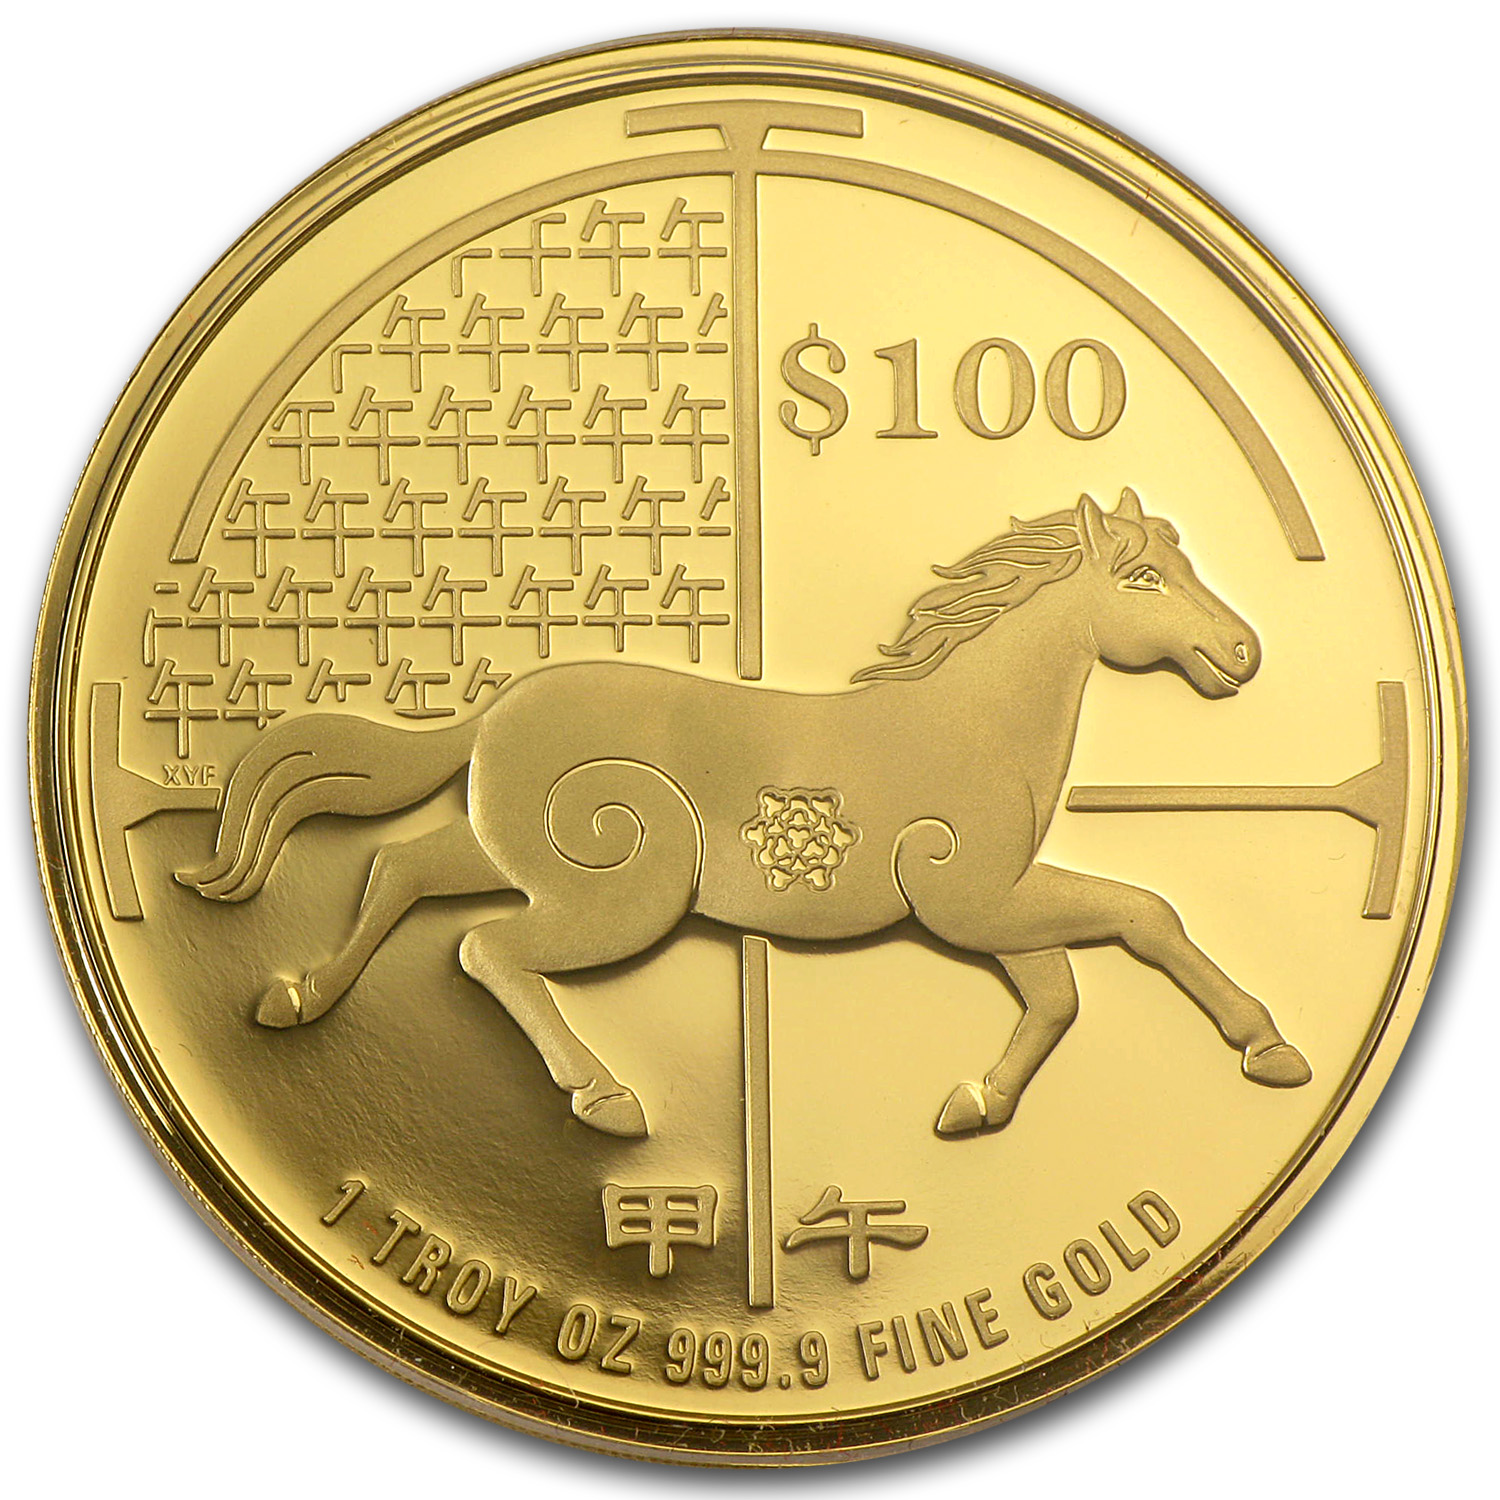 2014 1 oz Gold Singapore Year of the Horse Proof